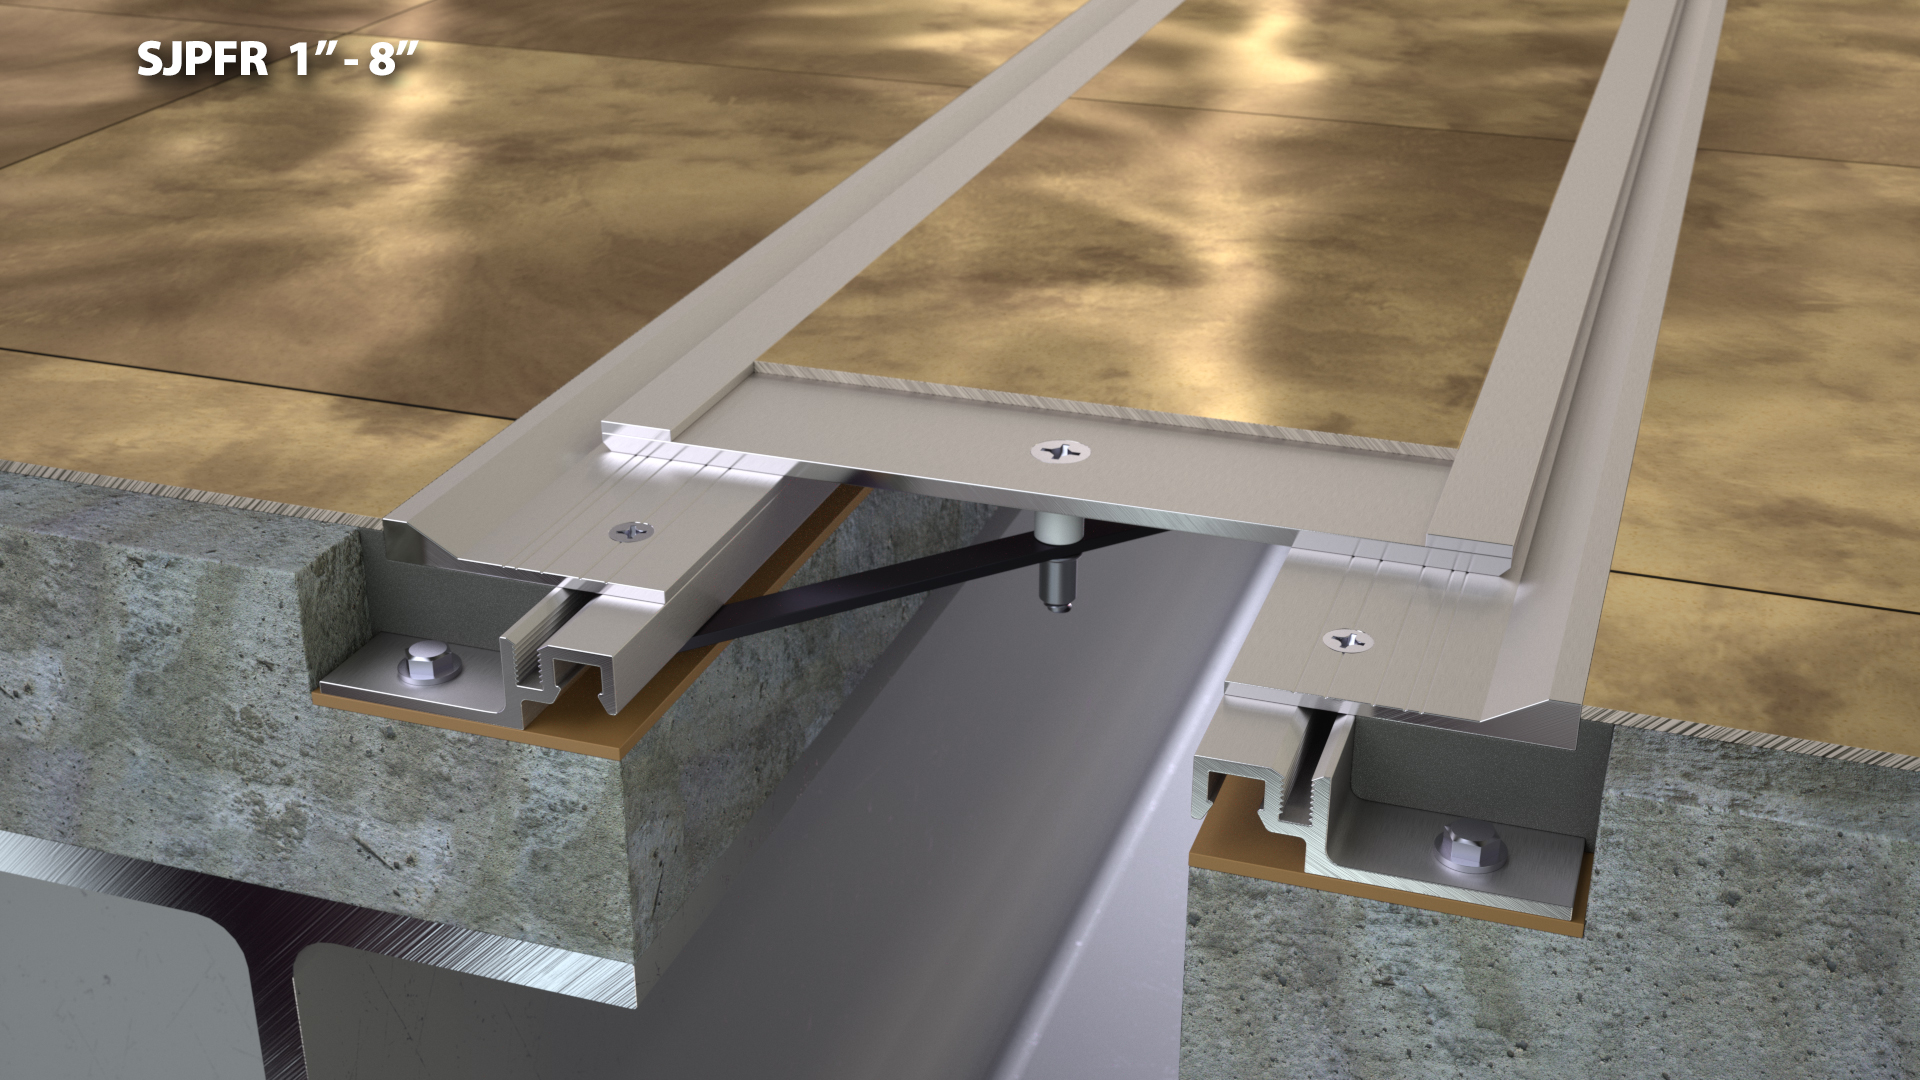 Expansion Joint Covers : Sjpfr sjpfrw cs